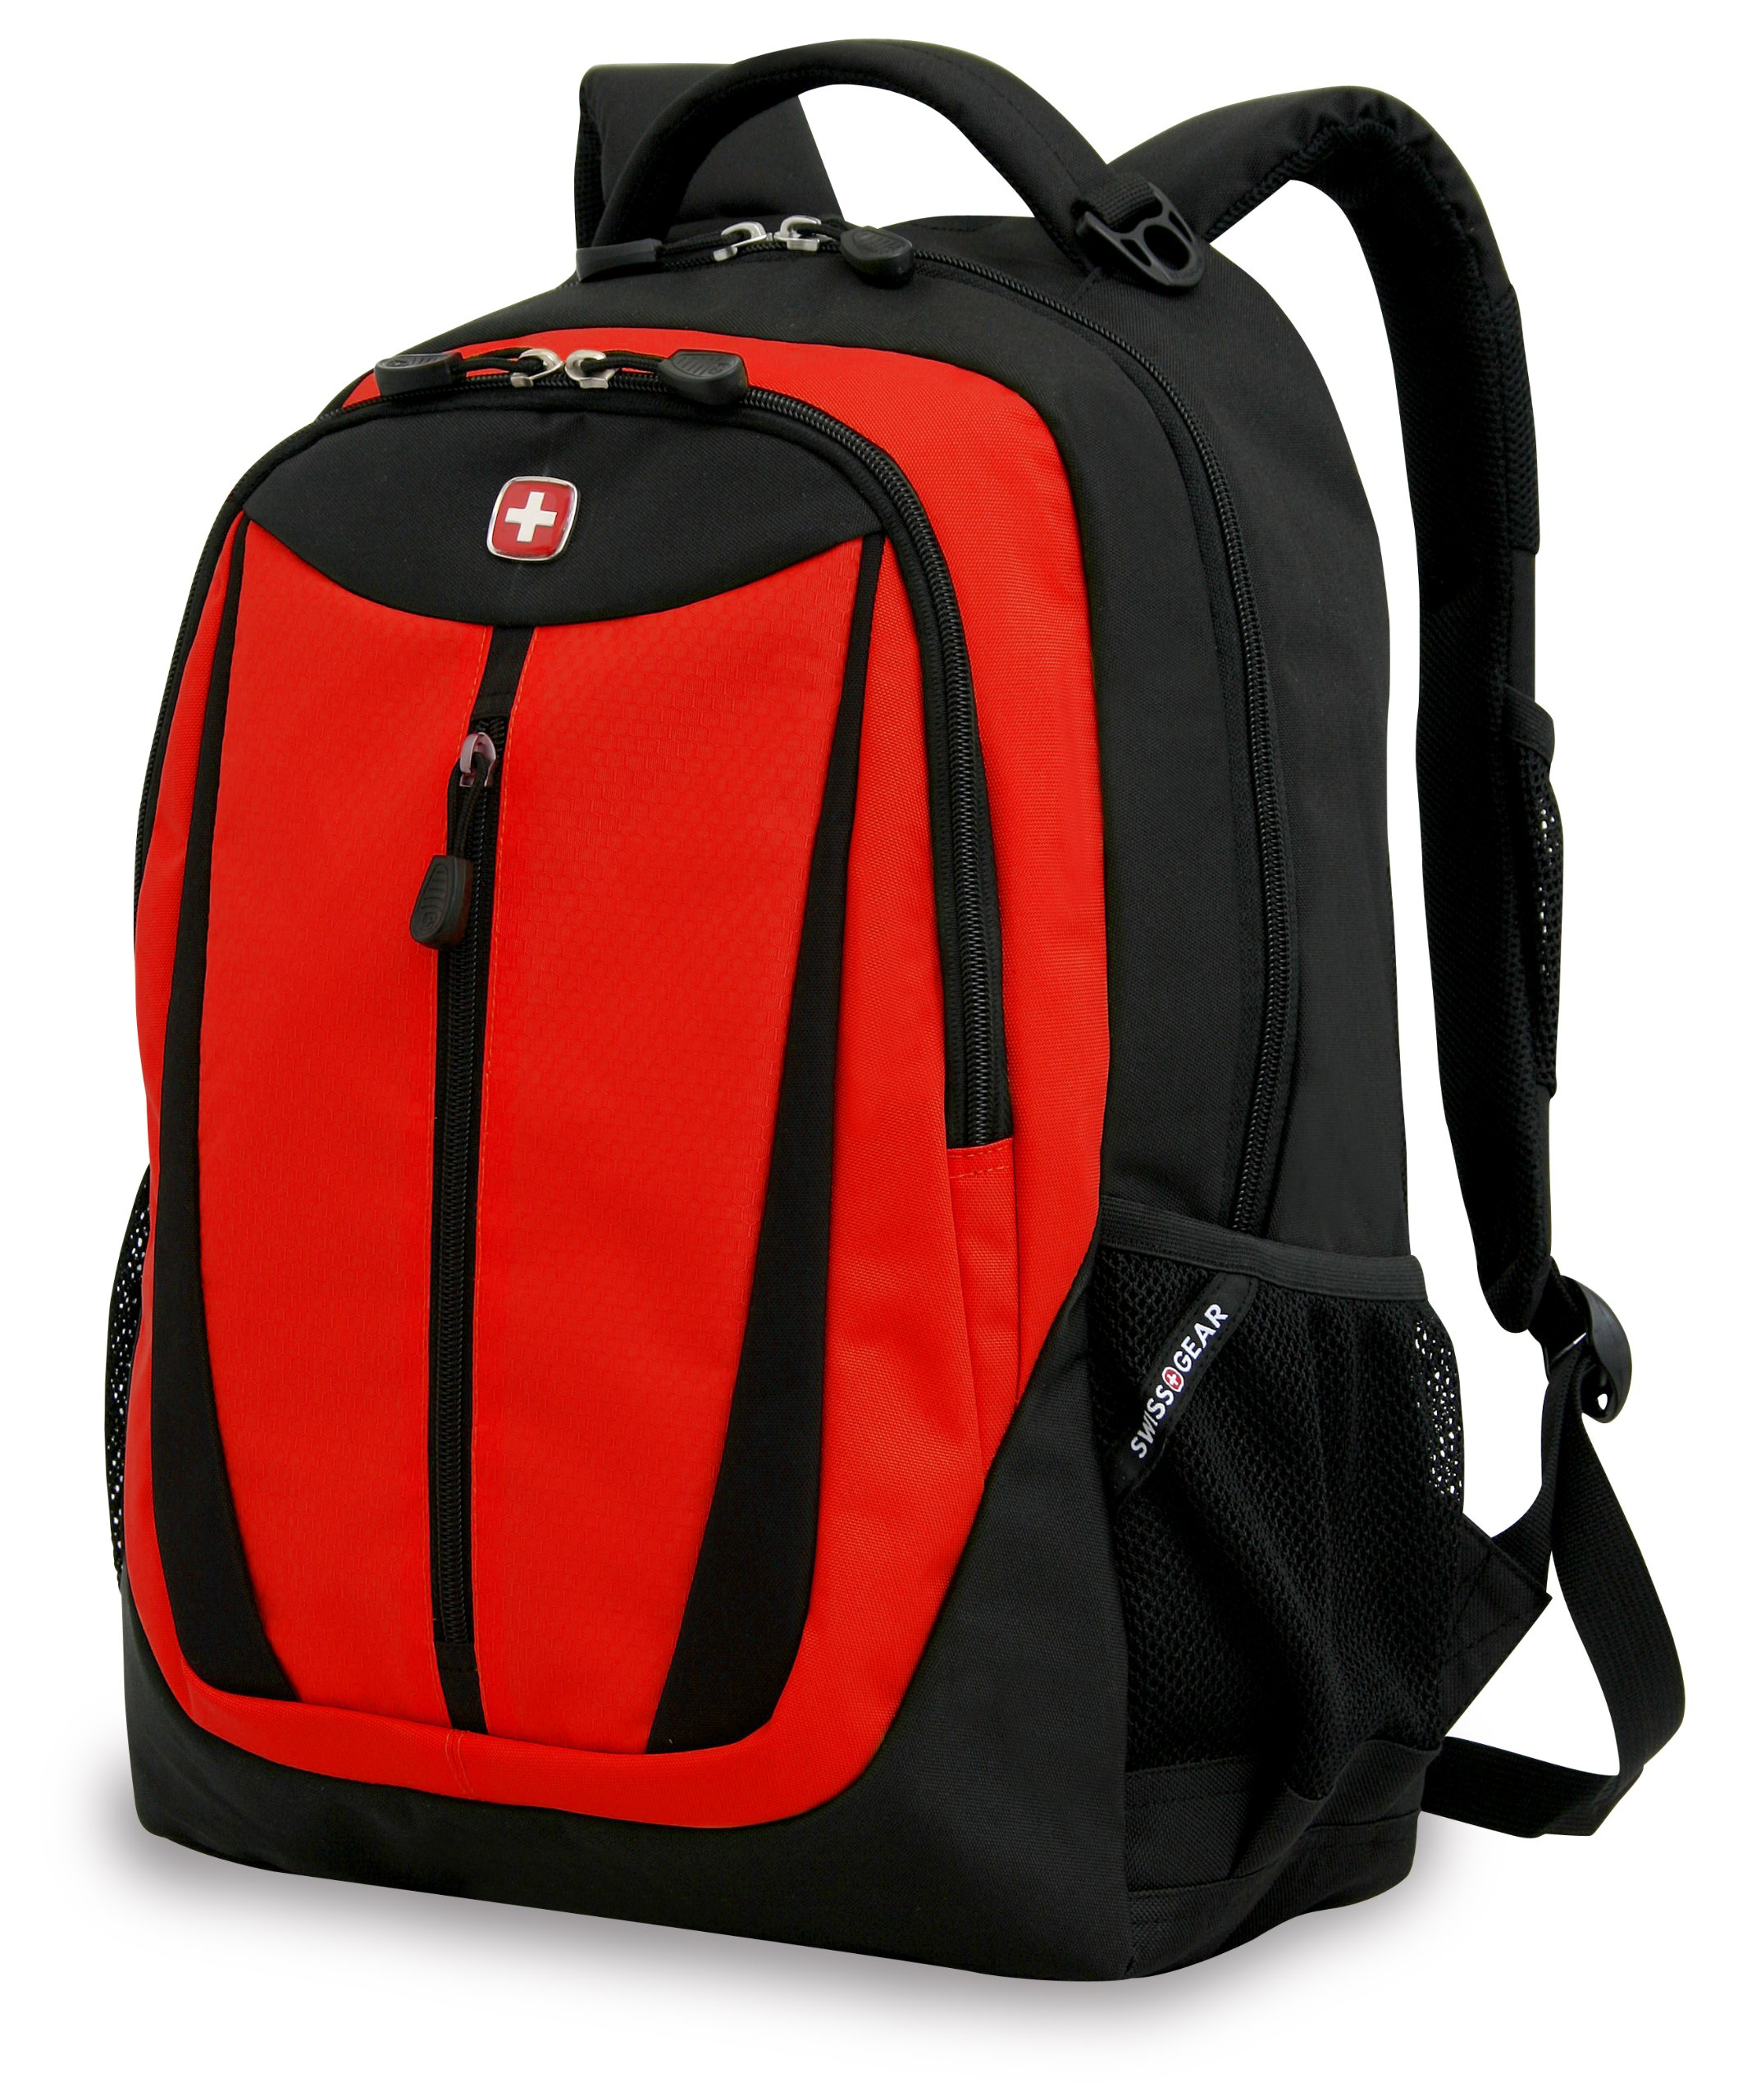 Swiss Gear SA3077 Black with Red Lightweight Laptop Backpack - Fits Most 15 Inch Laptops and Tablets by Swiss Gear